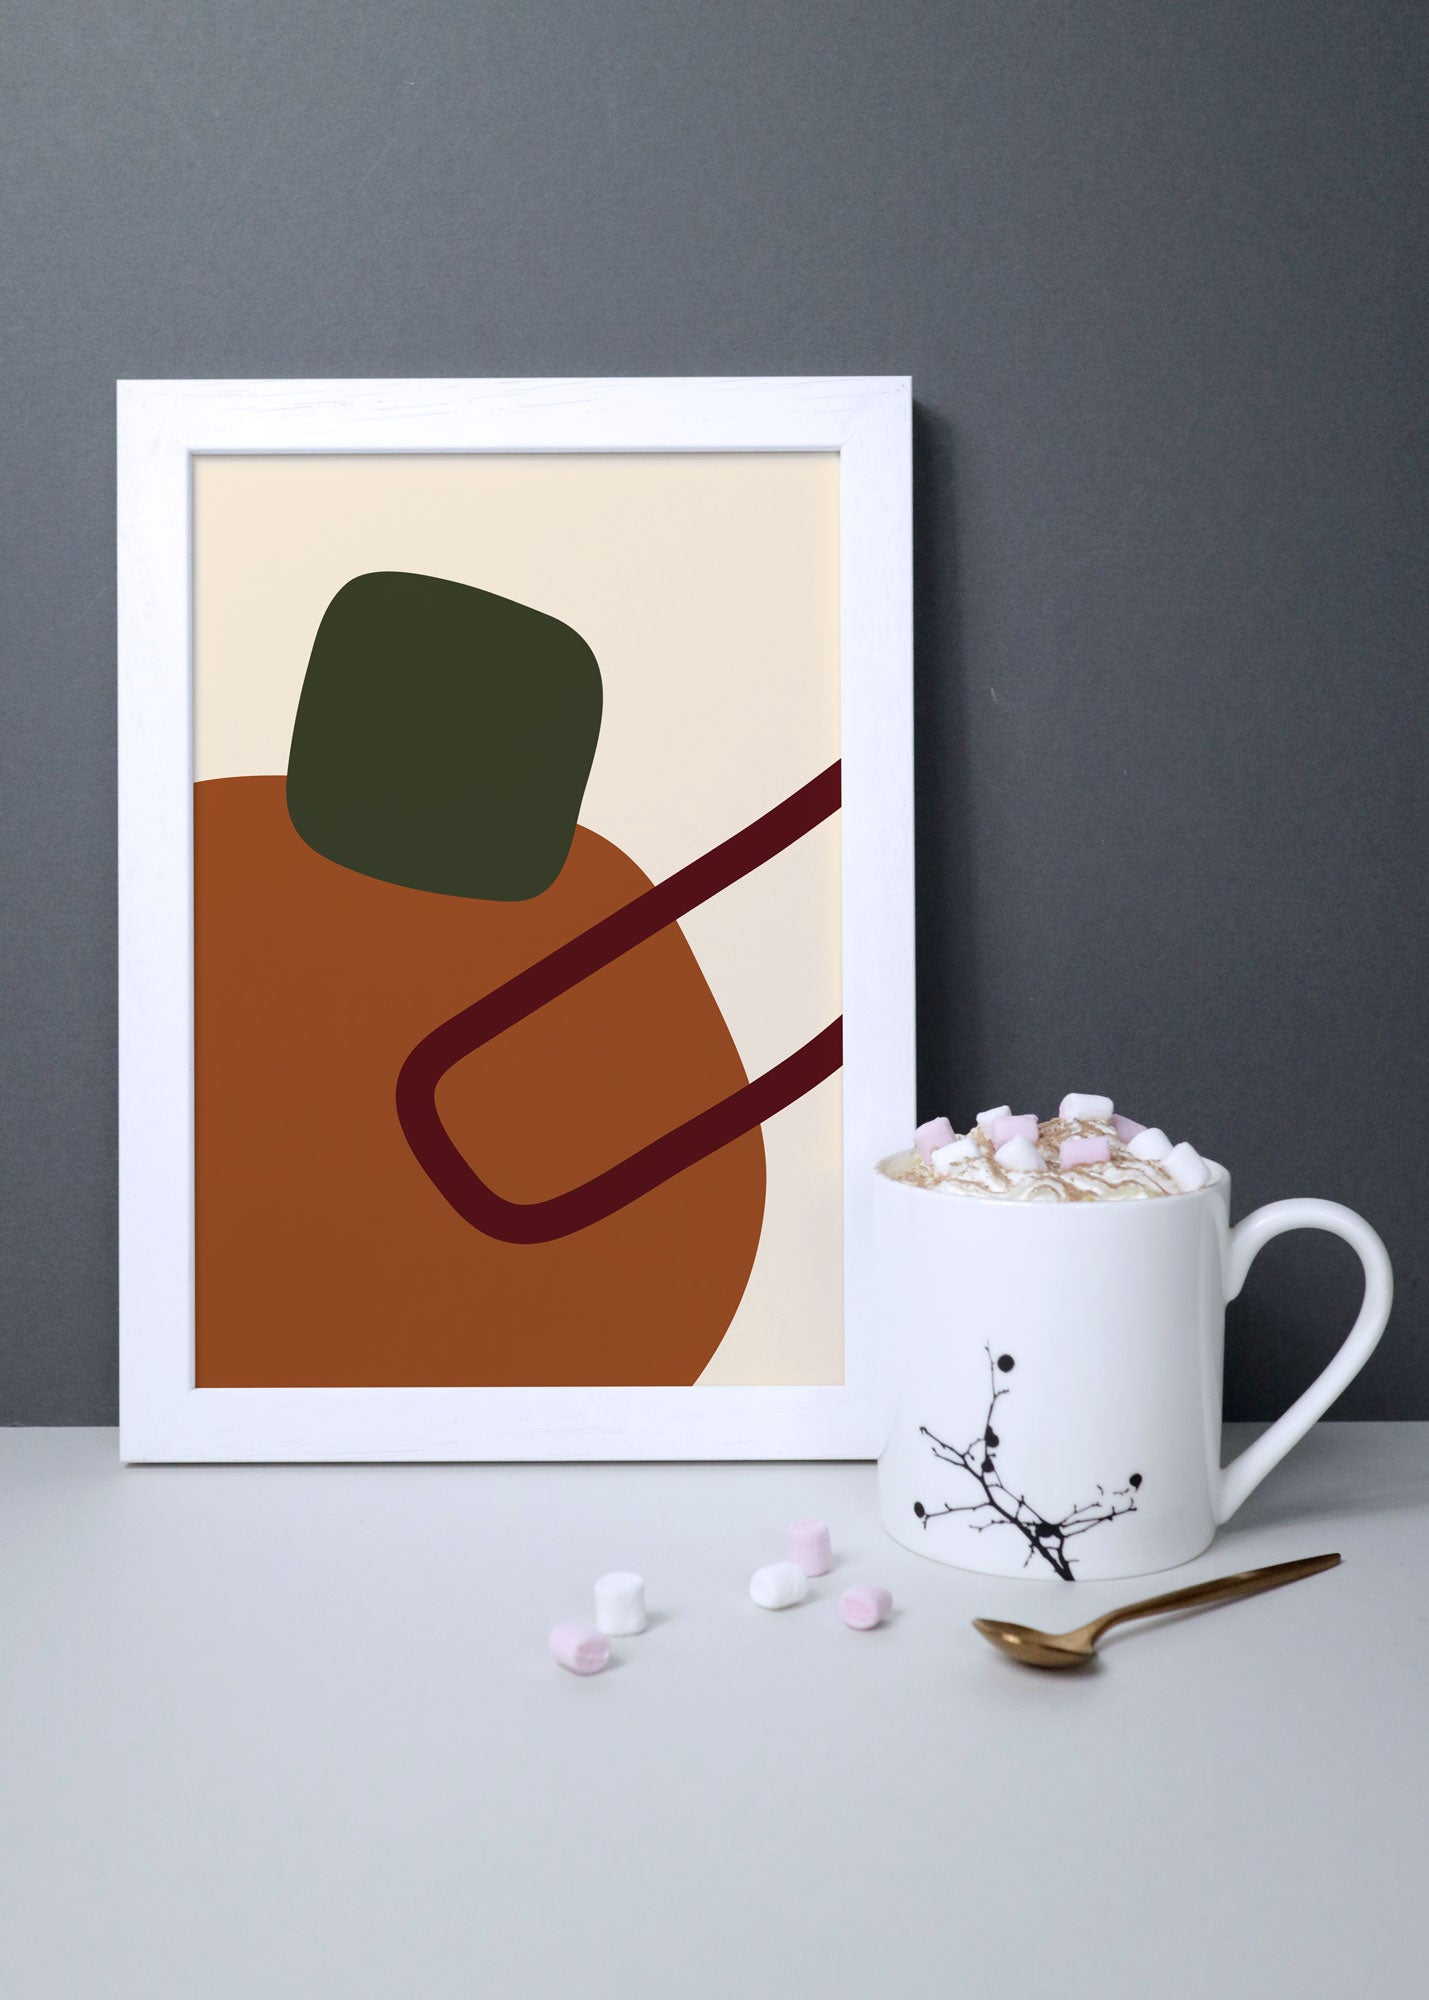 Autumnal geometric print inspired by hot chocolate